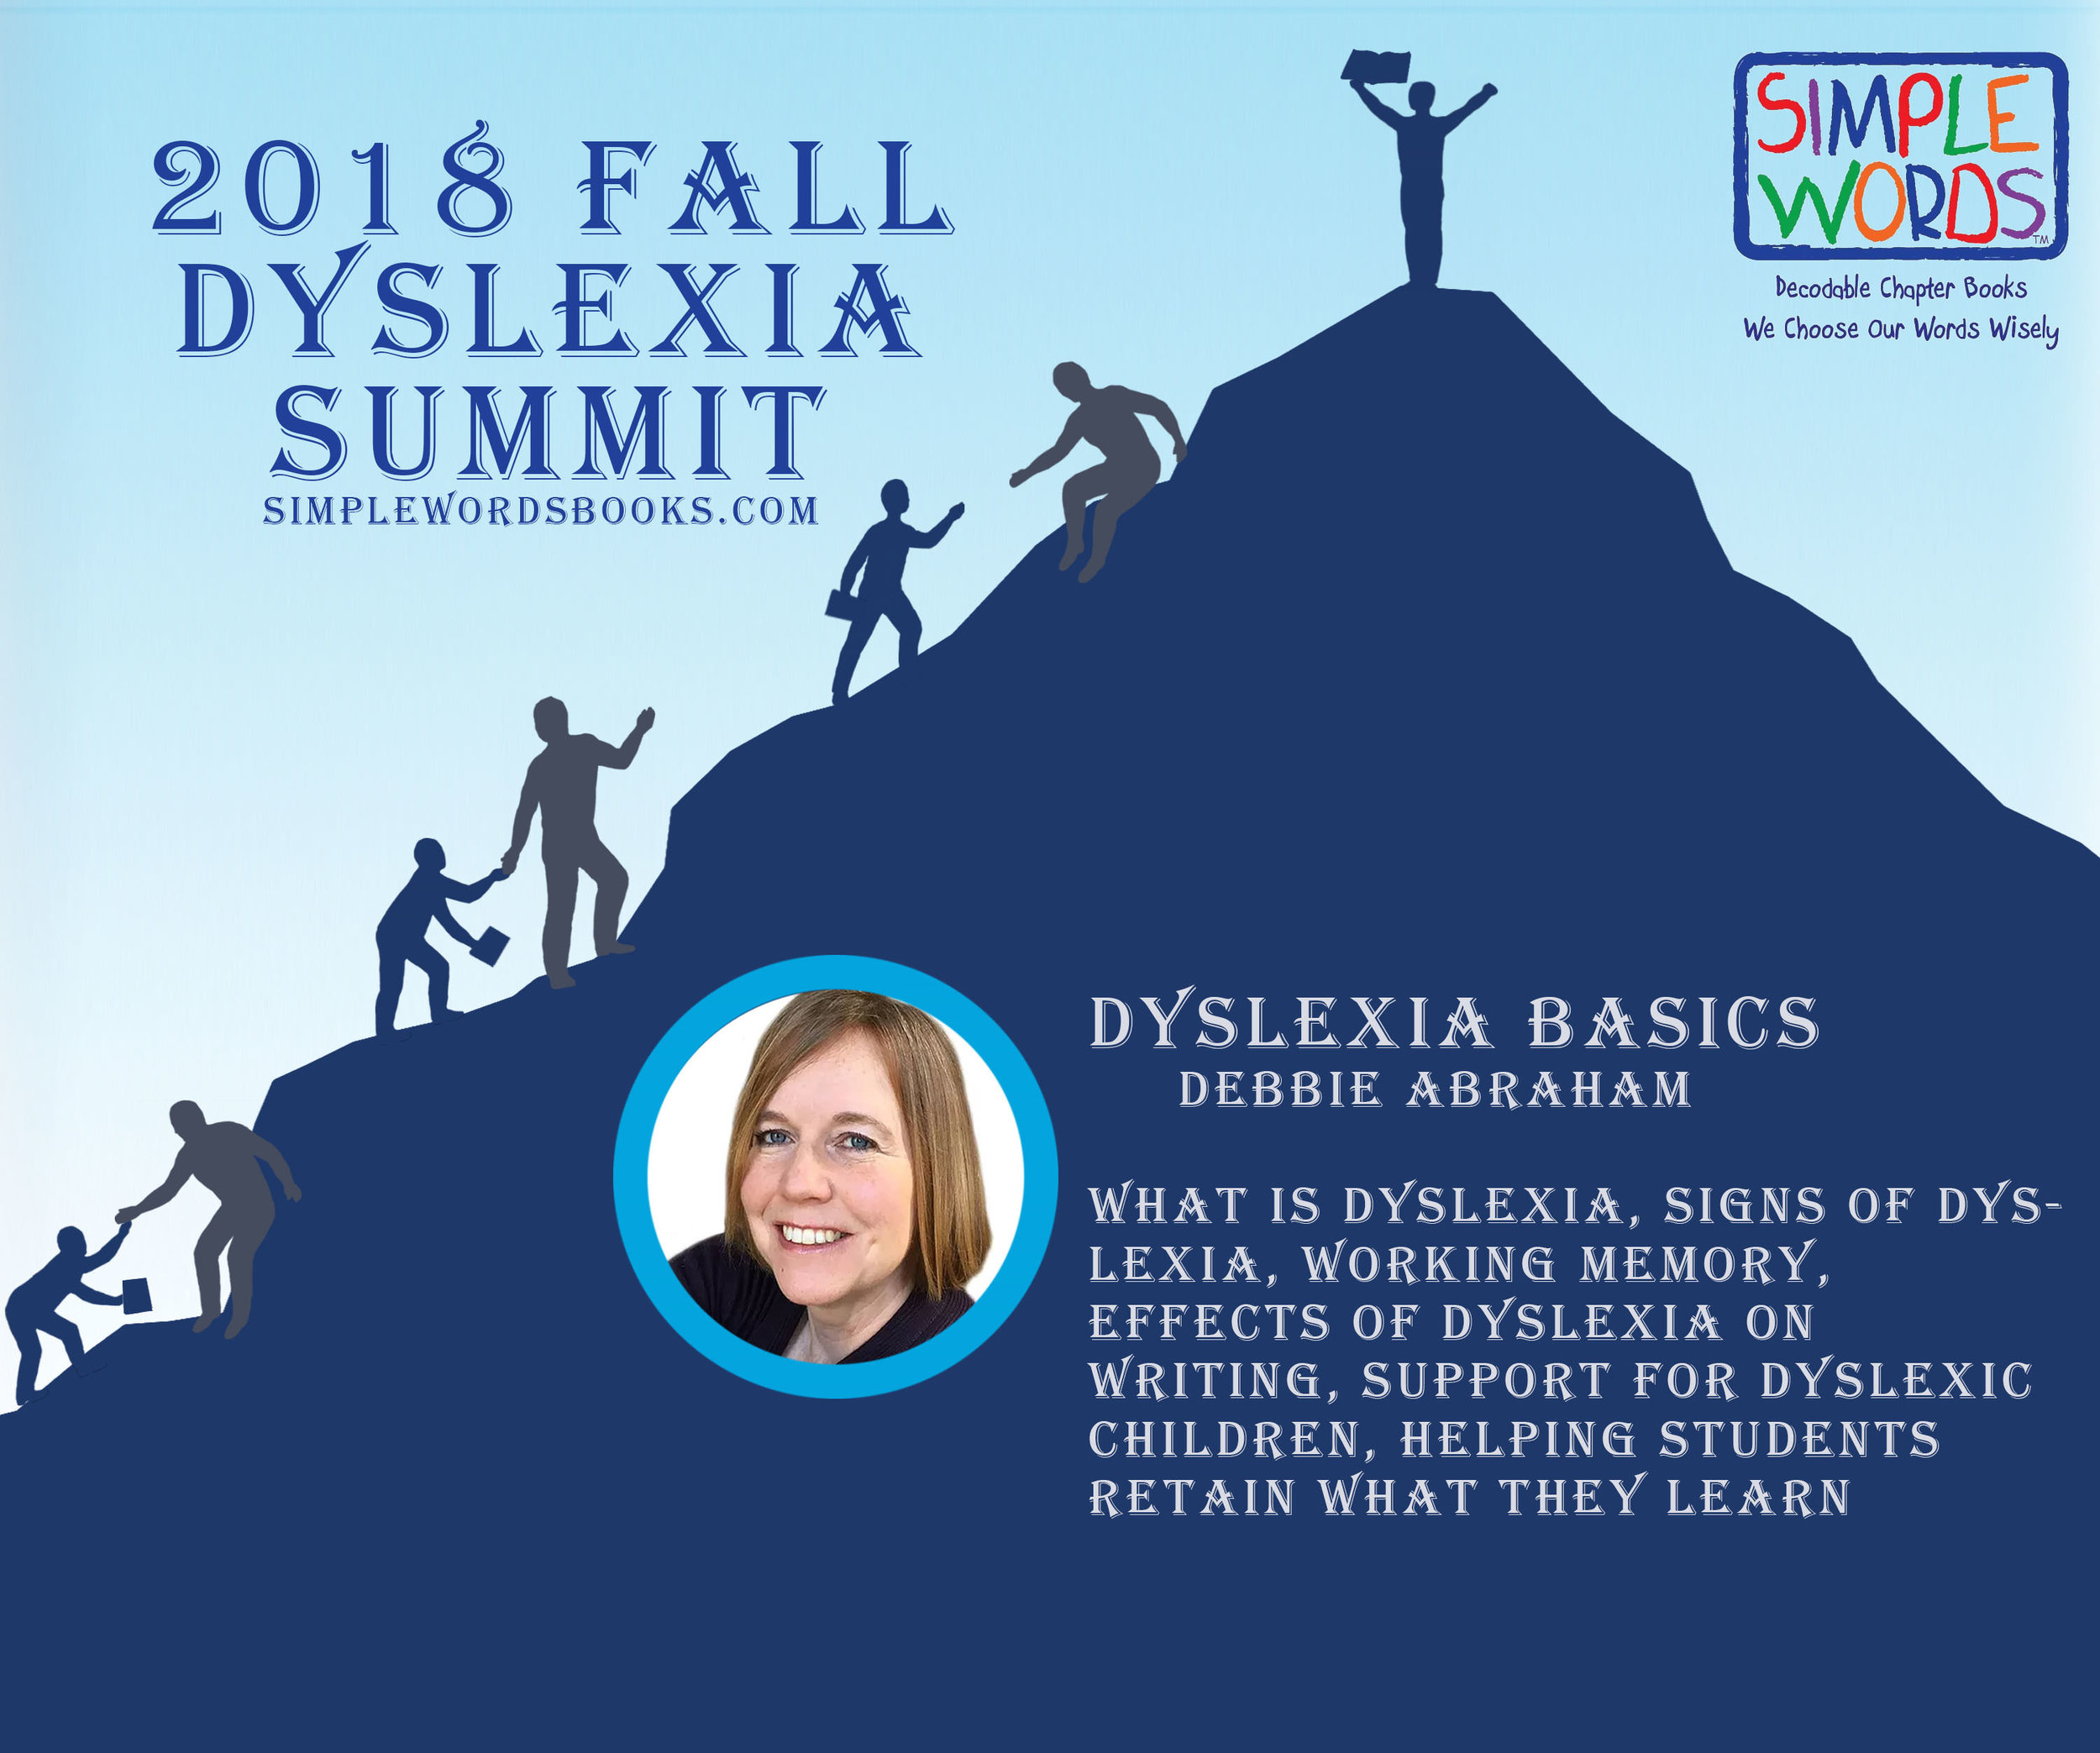 SIMPLE WORDS BOOKS 2018 Spring Summit DEBBIE ABRAHAM DYSLEXIE DEB.jpg